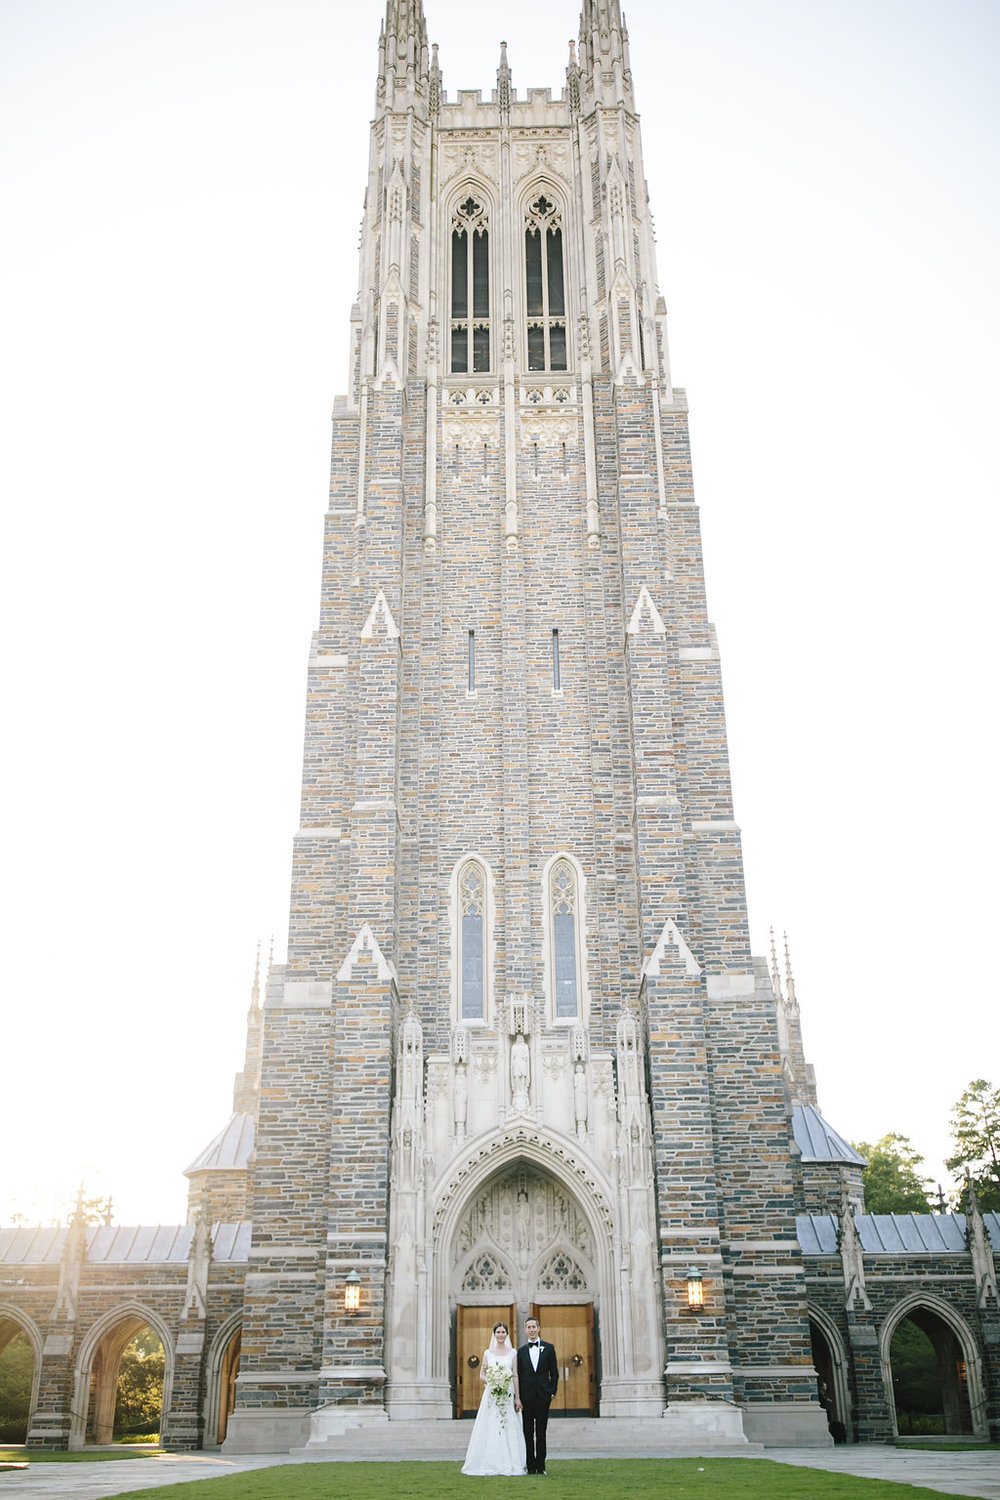 Duke Chapel wedding on Duke University campus